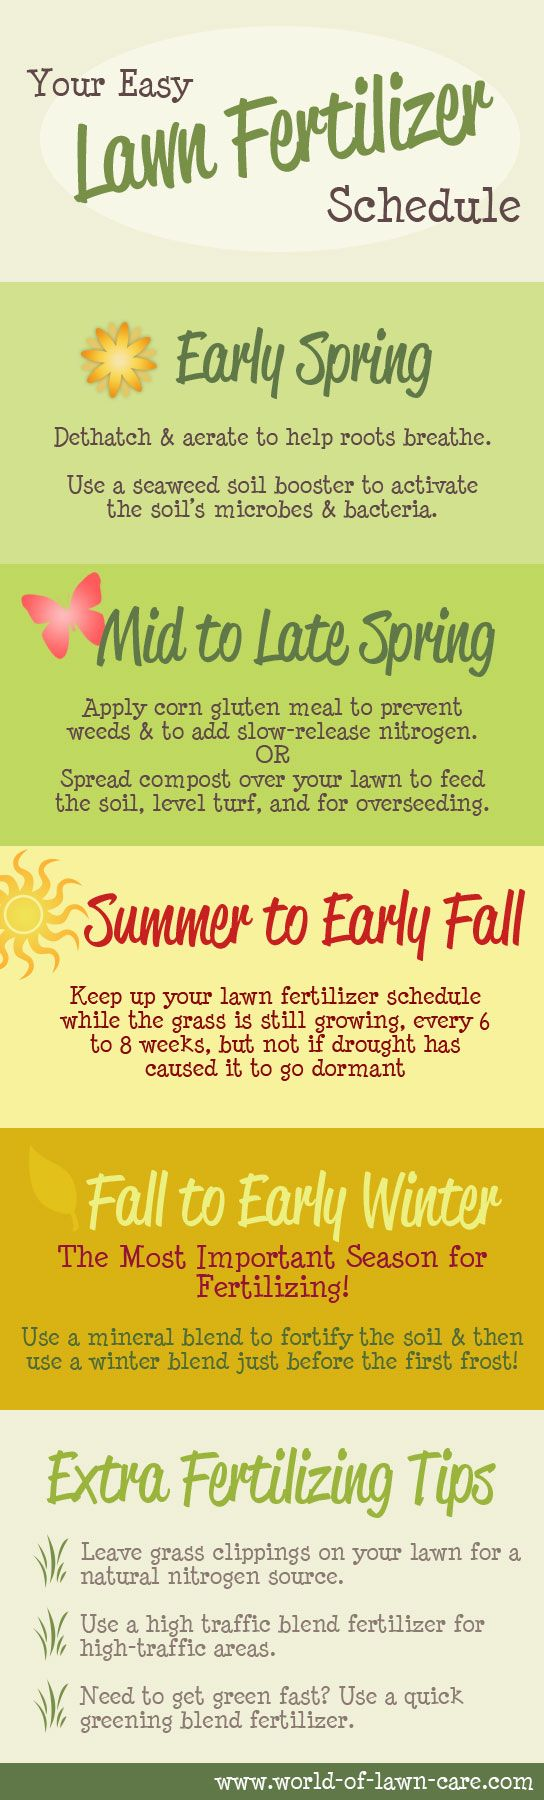 Lawn care advertising ideas - Pin And Save Our Lawn Fertilizer Schedule To Help You Know What To Feed Your